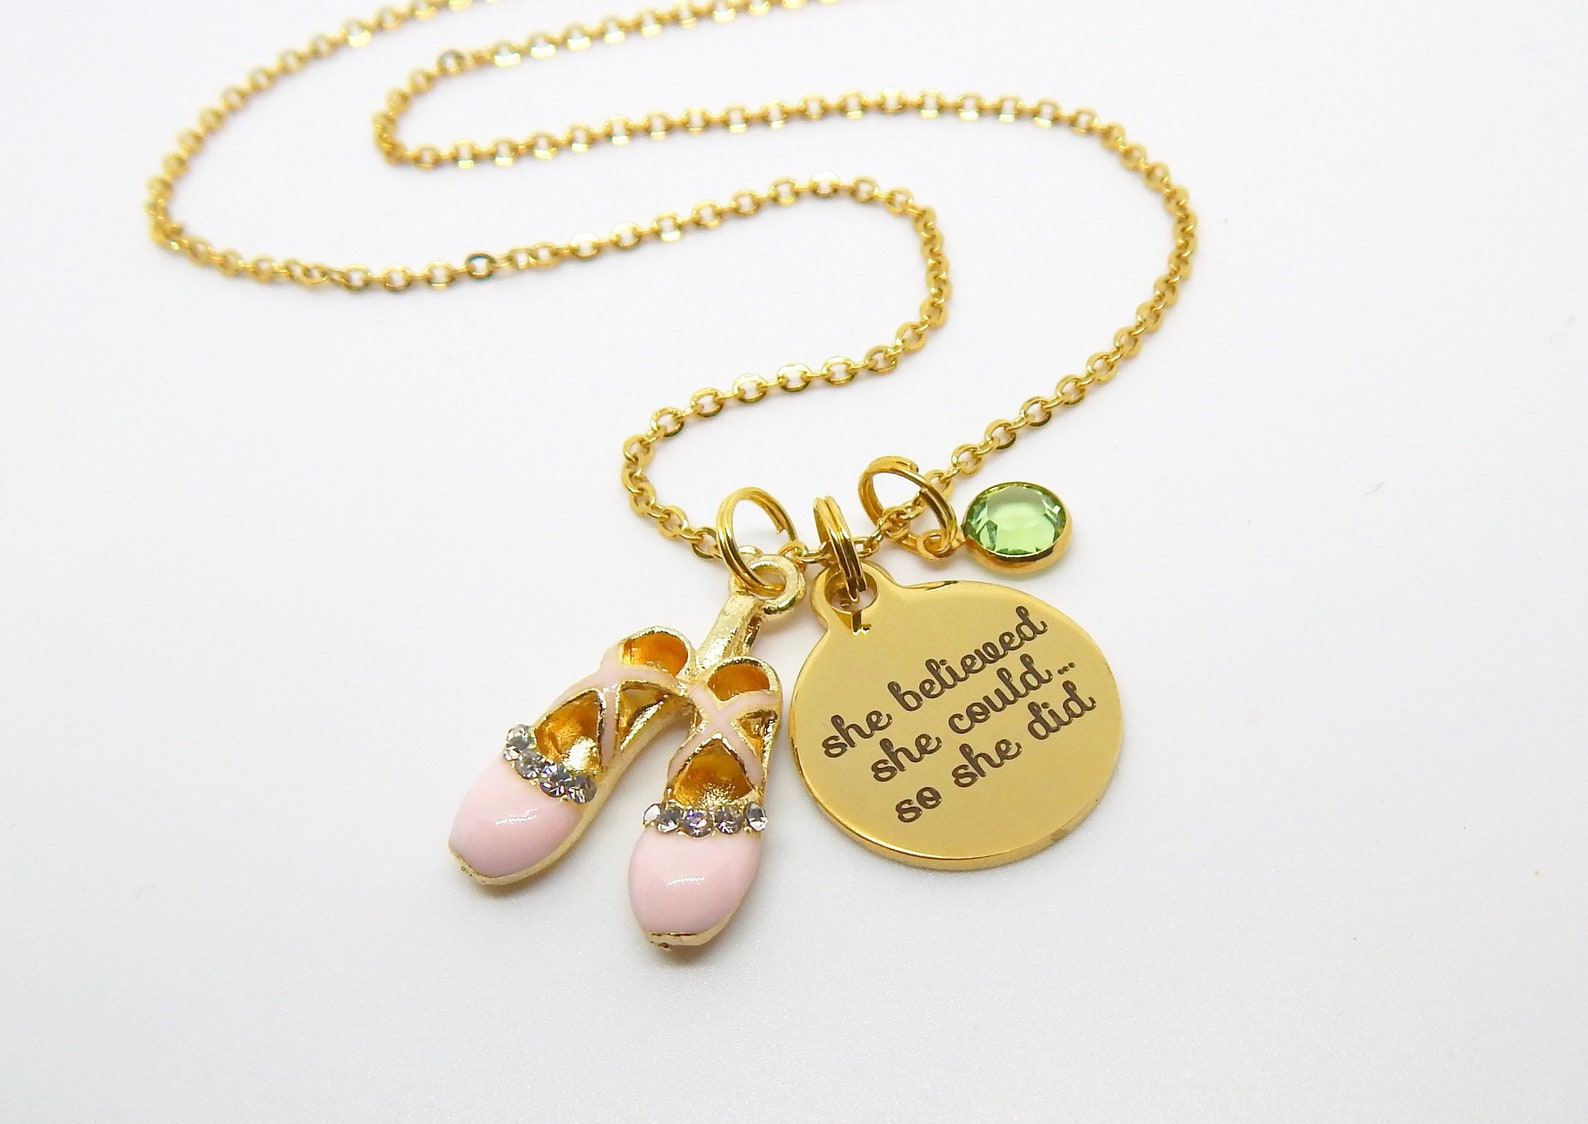 gold ballet necklace-pink ballet shoes jewelry-dancer quote she believed she could ballet gift ballerina jewelry-ballet recital